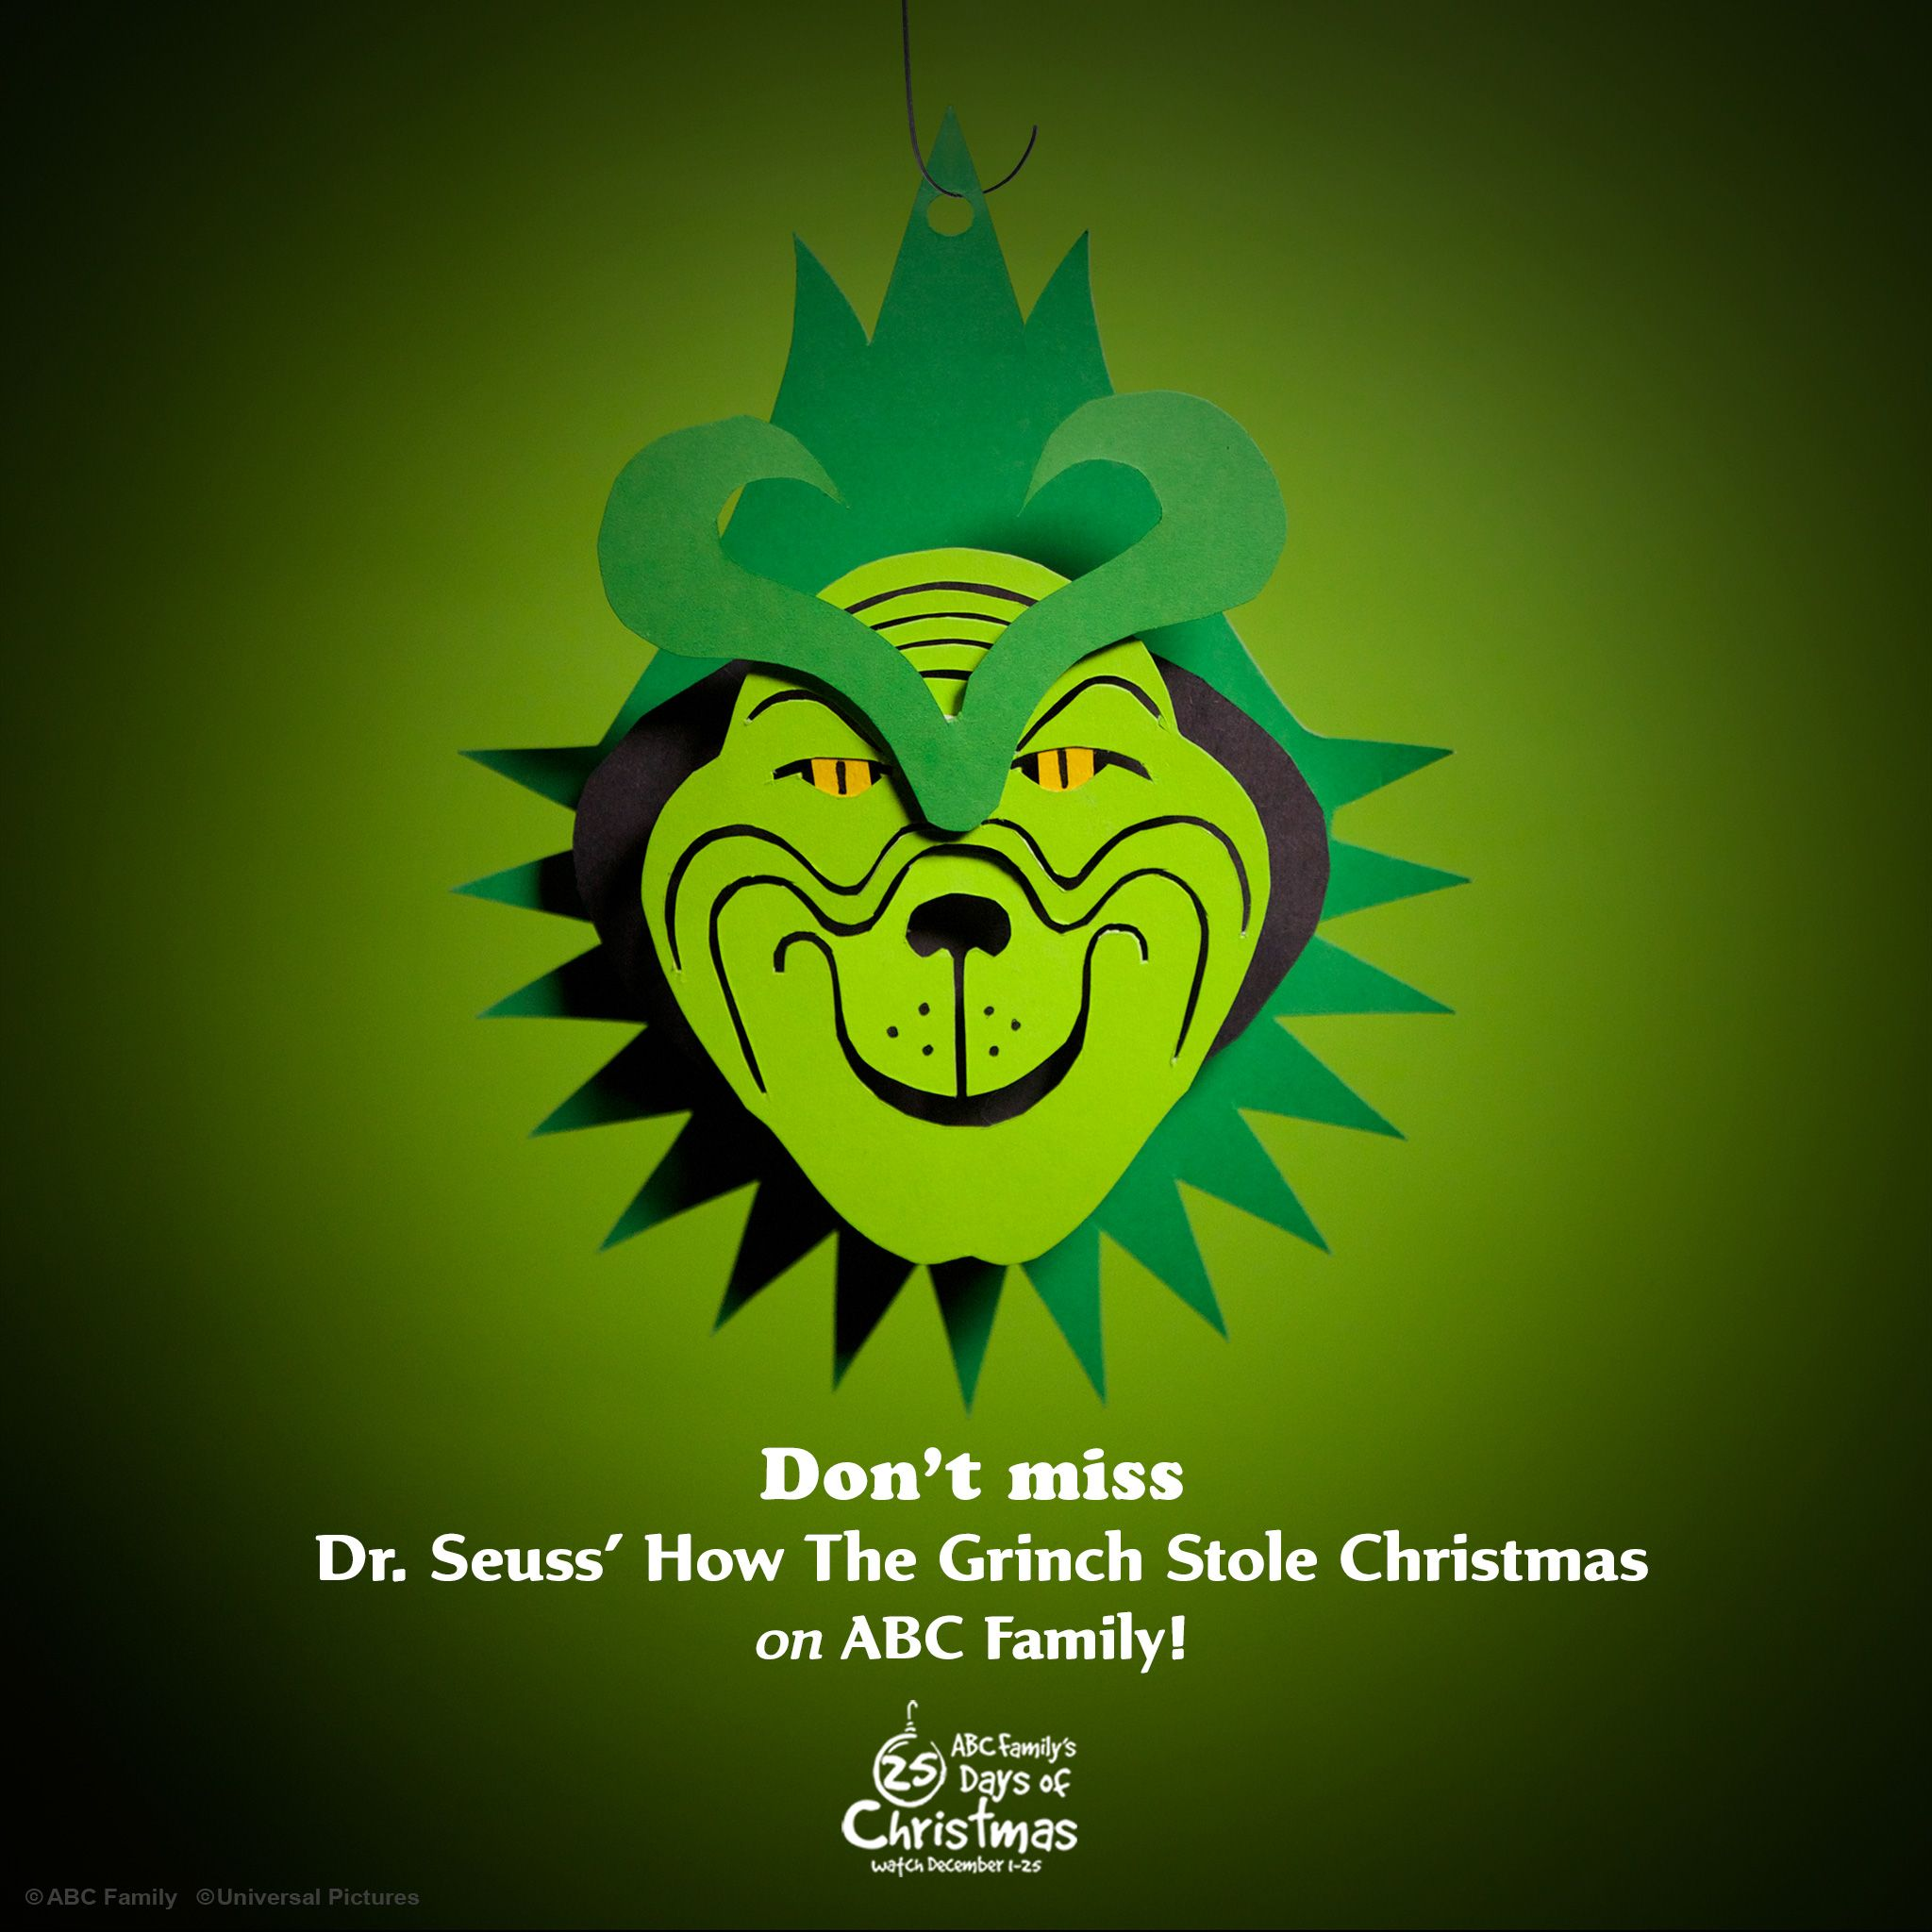 Don't miss How the Grinch Stole Christmas during ABC